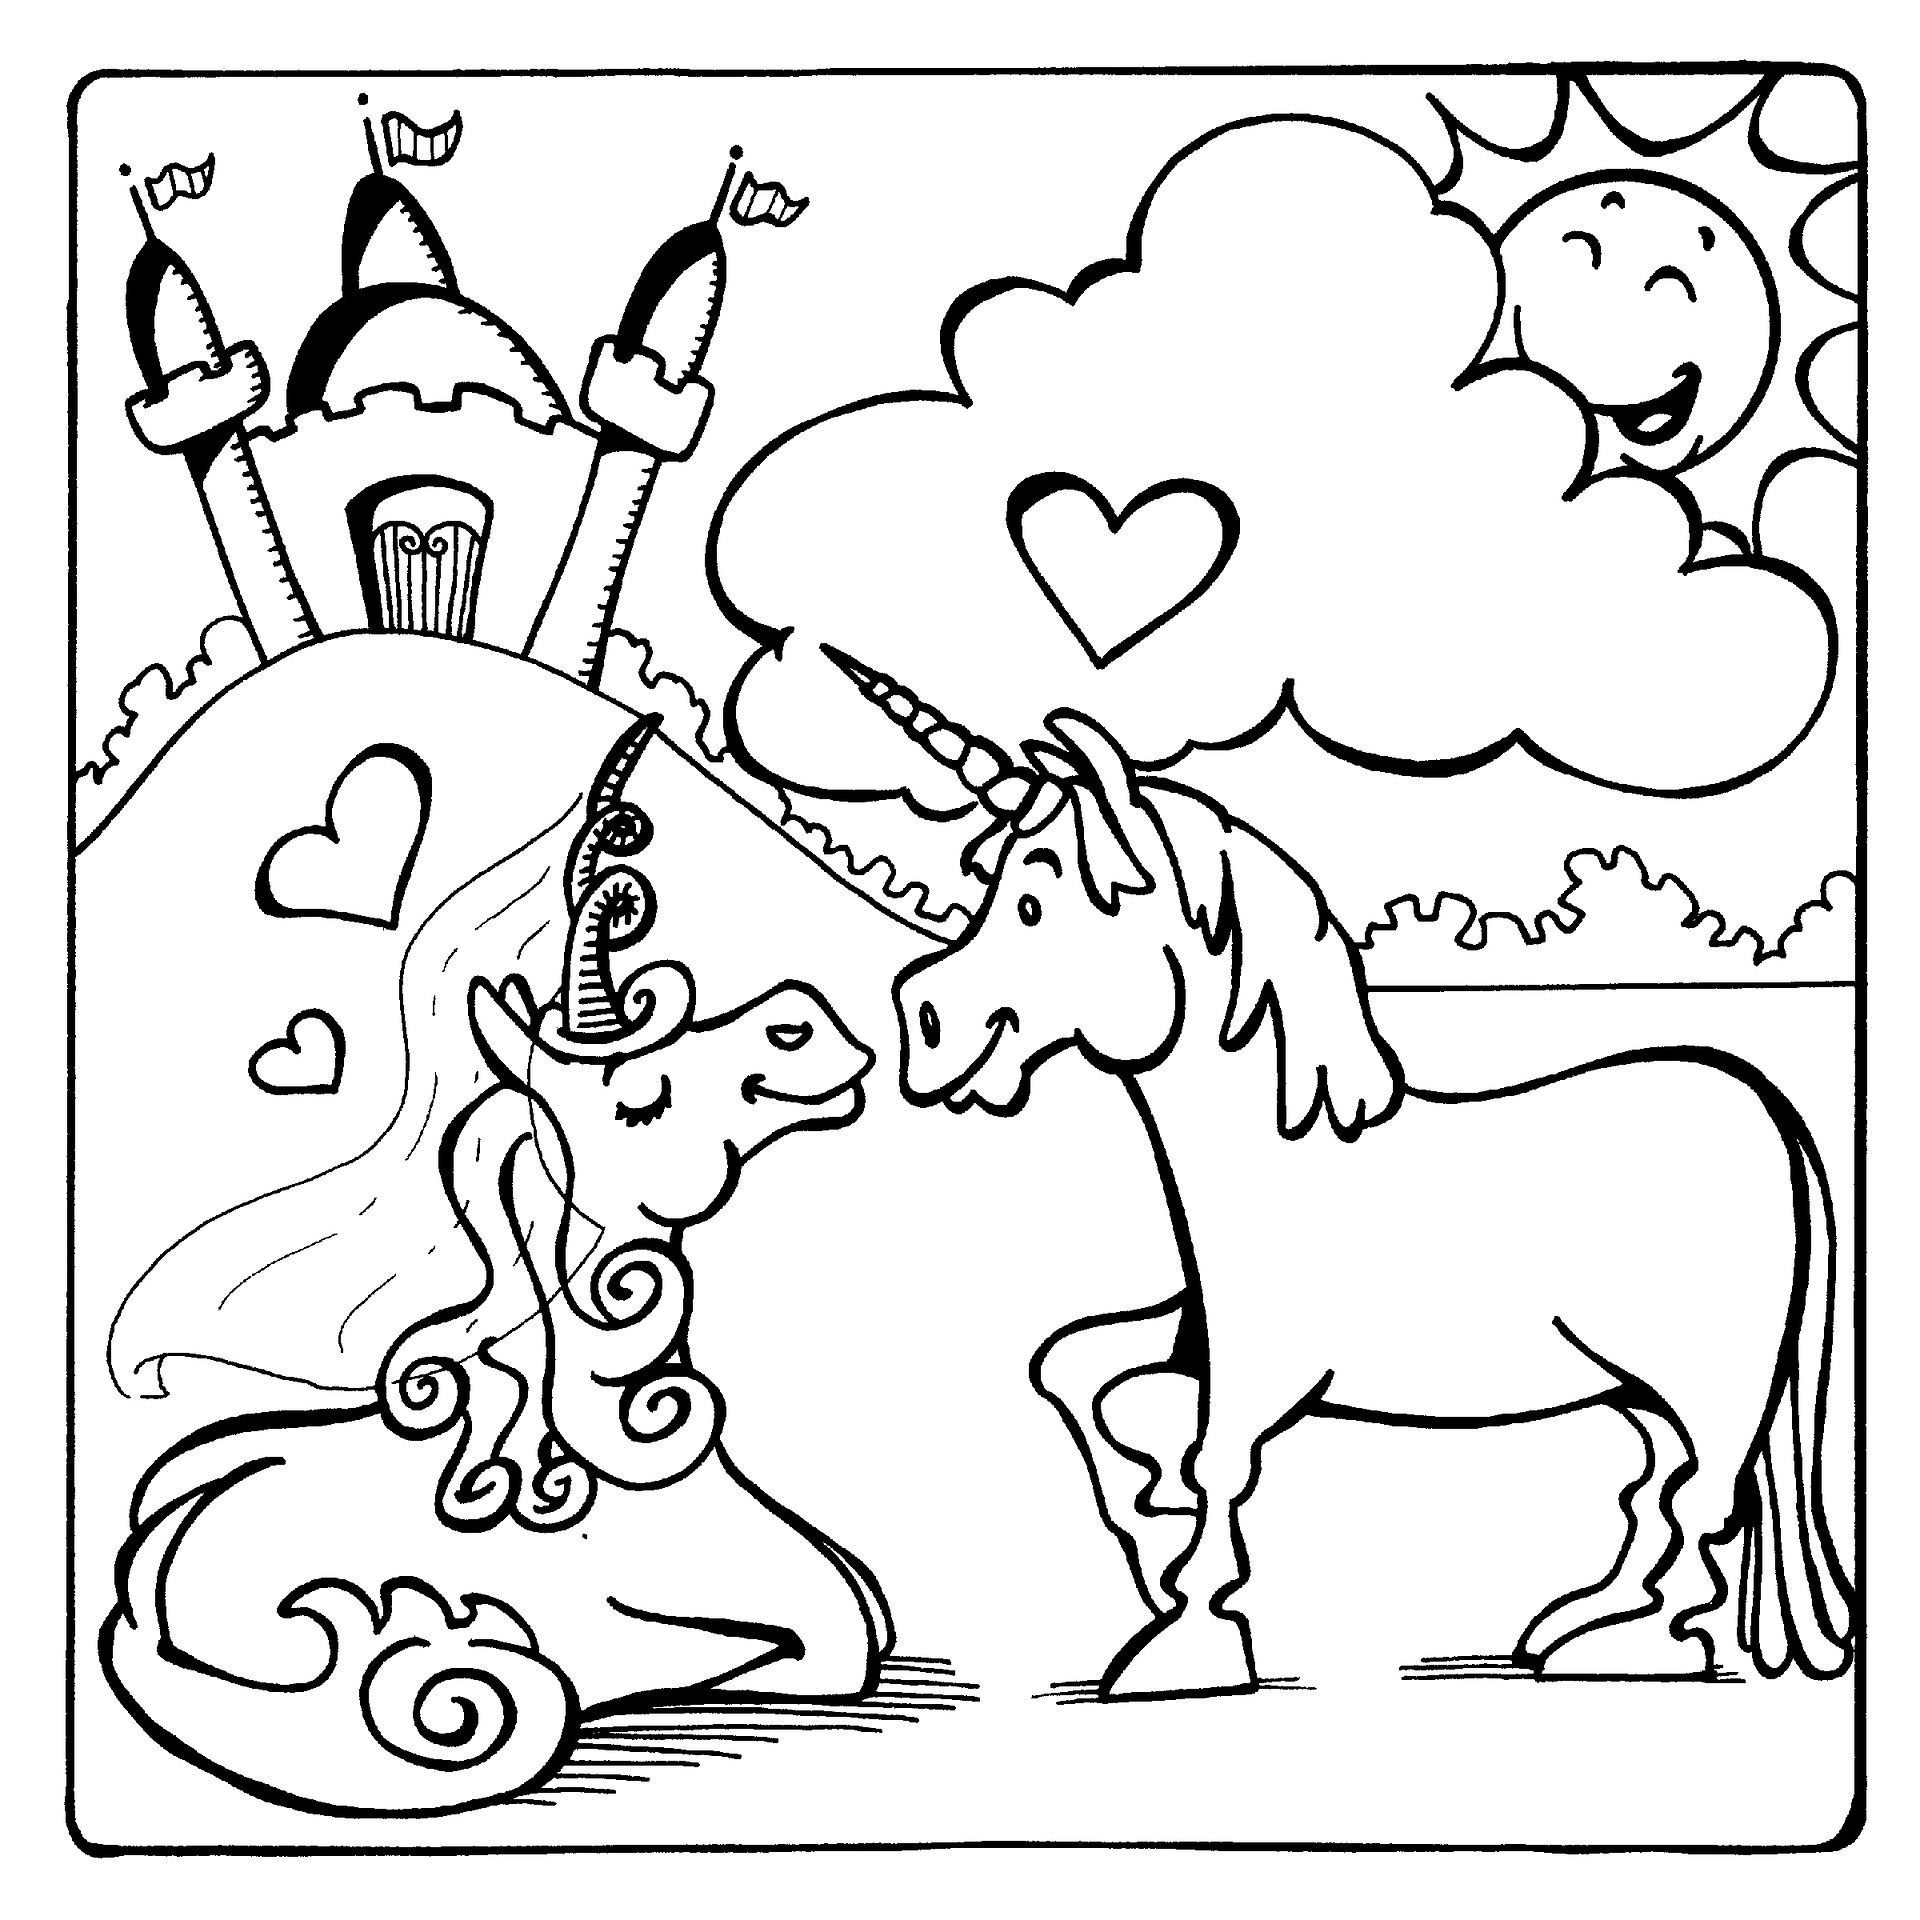 Artettuto Com Sh Drawing Coloring For Kids Drawings For Kids Coloring Book Kids Cuties Coloring Pag Unicorn Coloring Pages Love Coloring Pages Coloring Pages